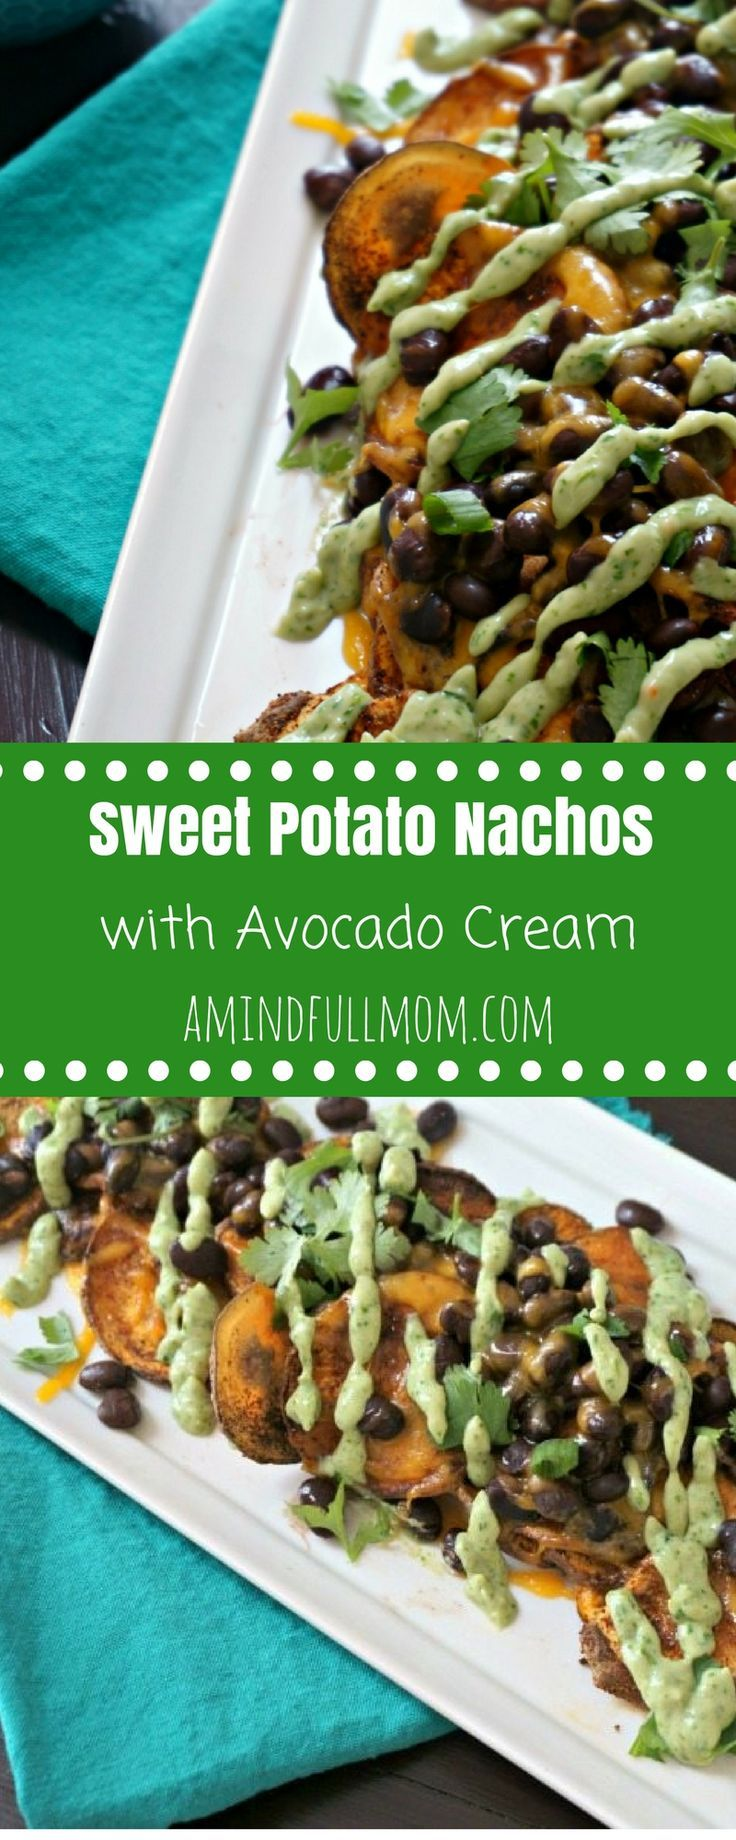 Baked Sweet Potato Nachos with Avocado Cilantro Cream : Spiced, baked Sweet potato rounds become the base for healthy nachos. They are topped with black beans, cheese and a healthy drizzle of avocado cilantro cream that is to die for. #glutenfree #vegetarian #gamedaysnacks #healthyappetizer via @amindfullmom